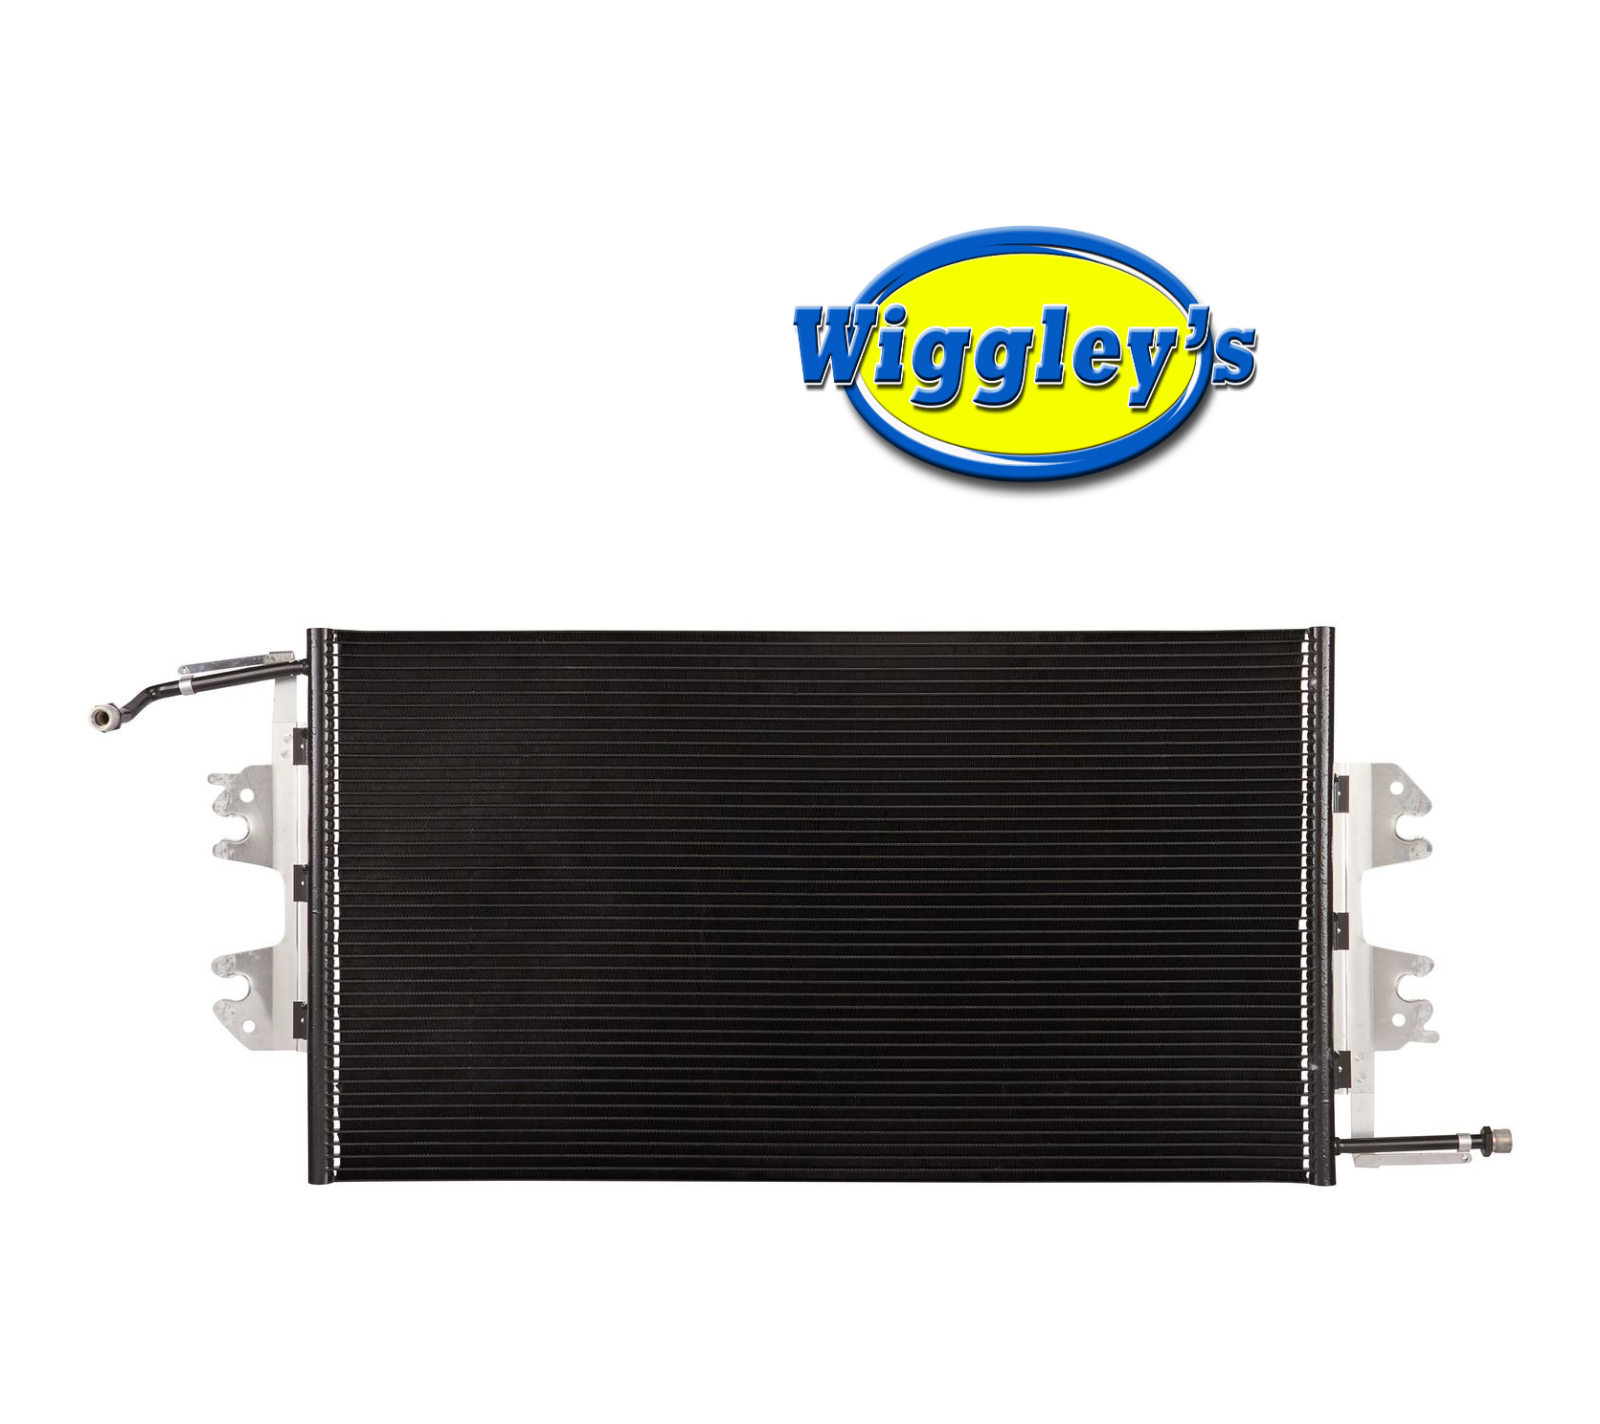 A/C CONDENSER GM3030180 FOR 96 97 98 99 00 01 02 CHEVROLET GMC 1500 2500 3500